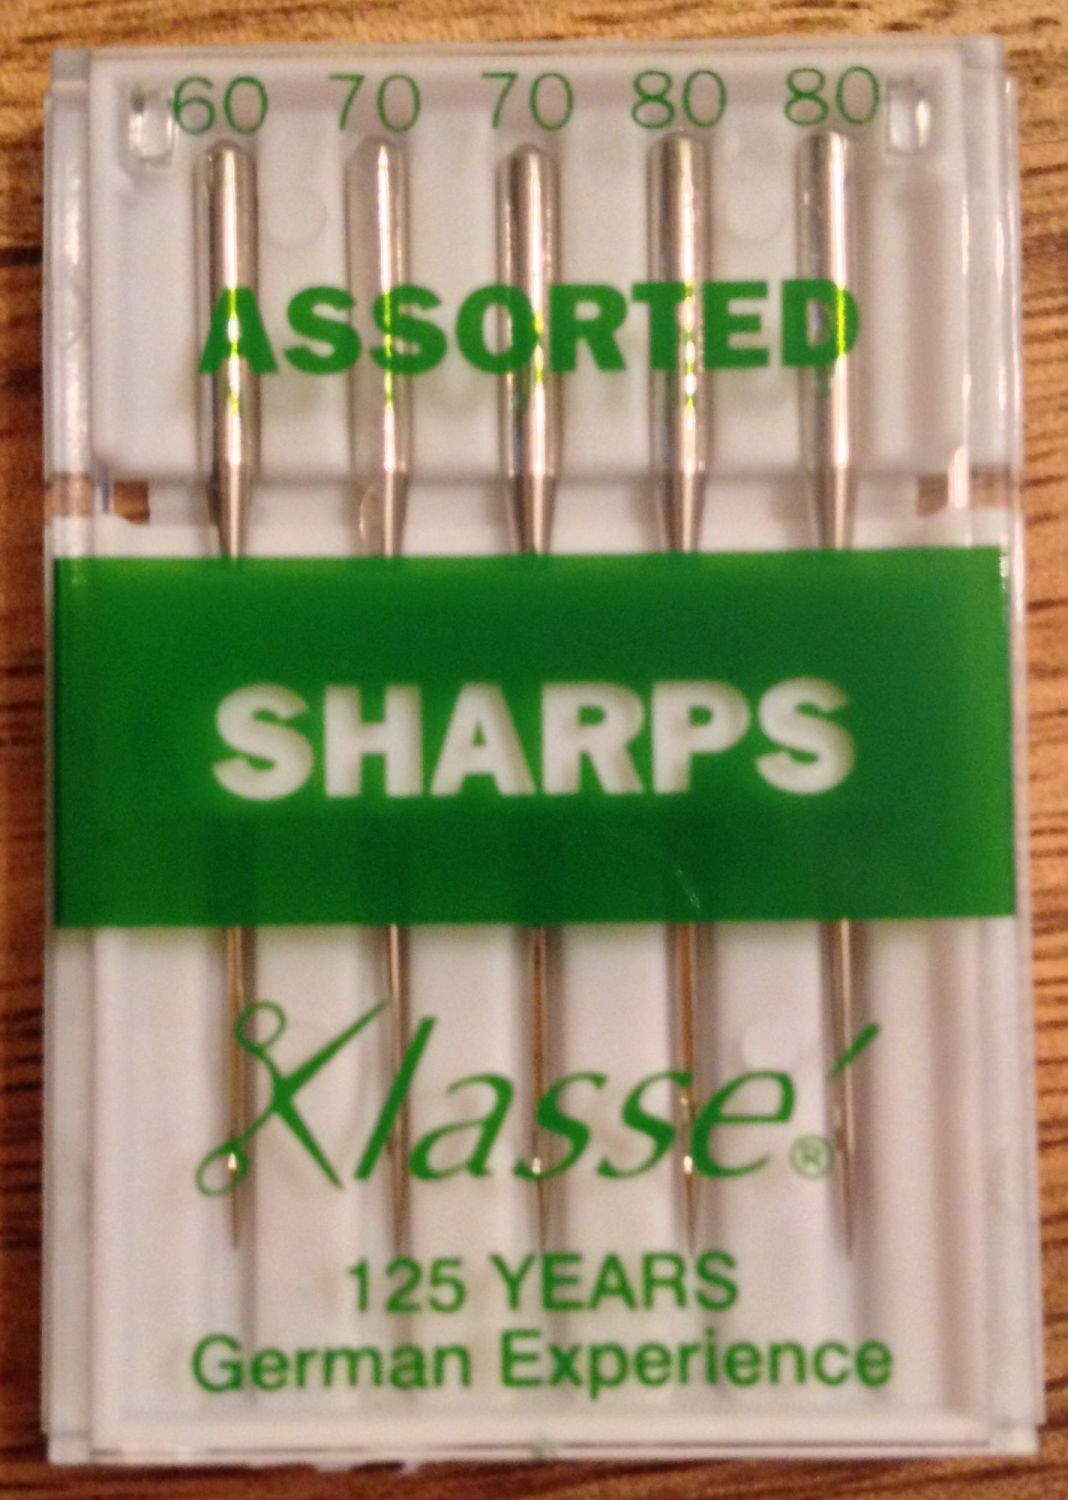 SHARPS ASSORTED